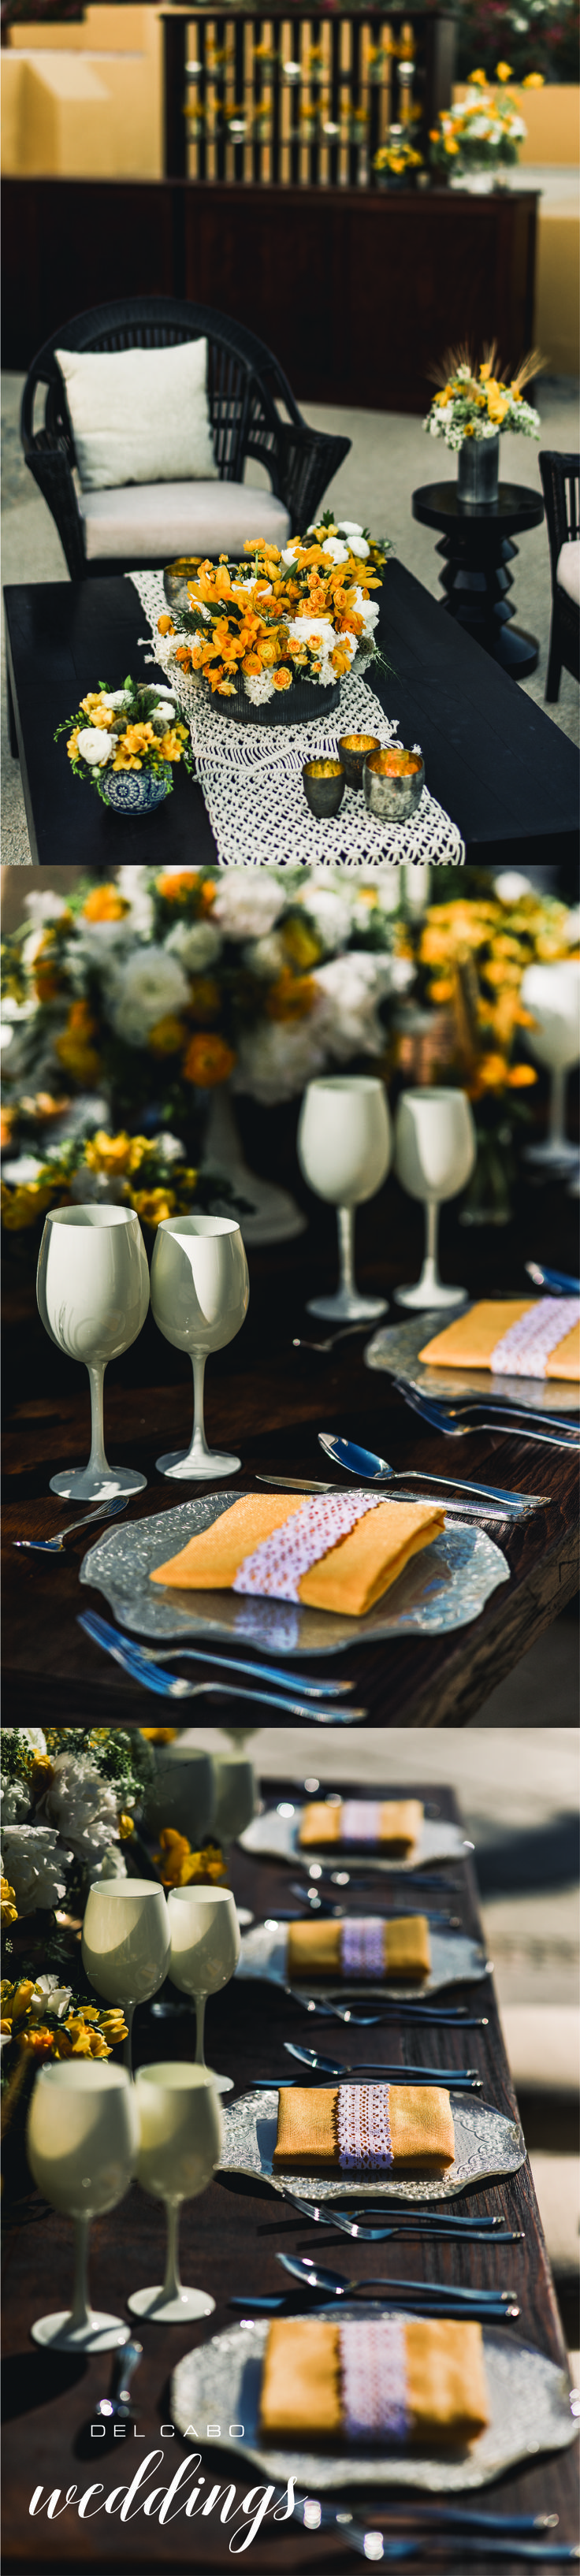 Natural and timeless wedding decorations! Del Cabo Weddings will help you plan your rustic destination wedding at Cabo!